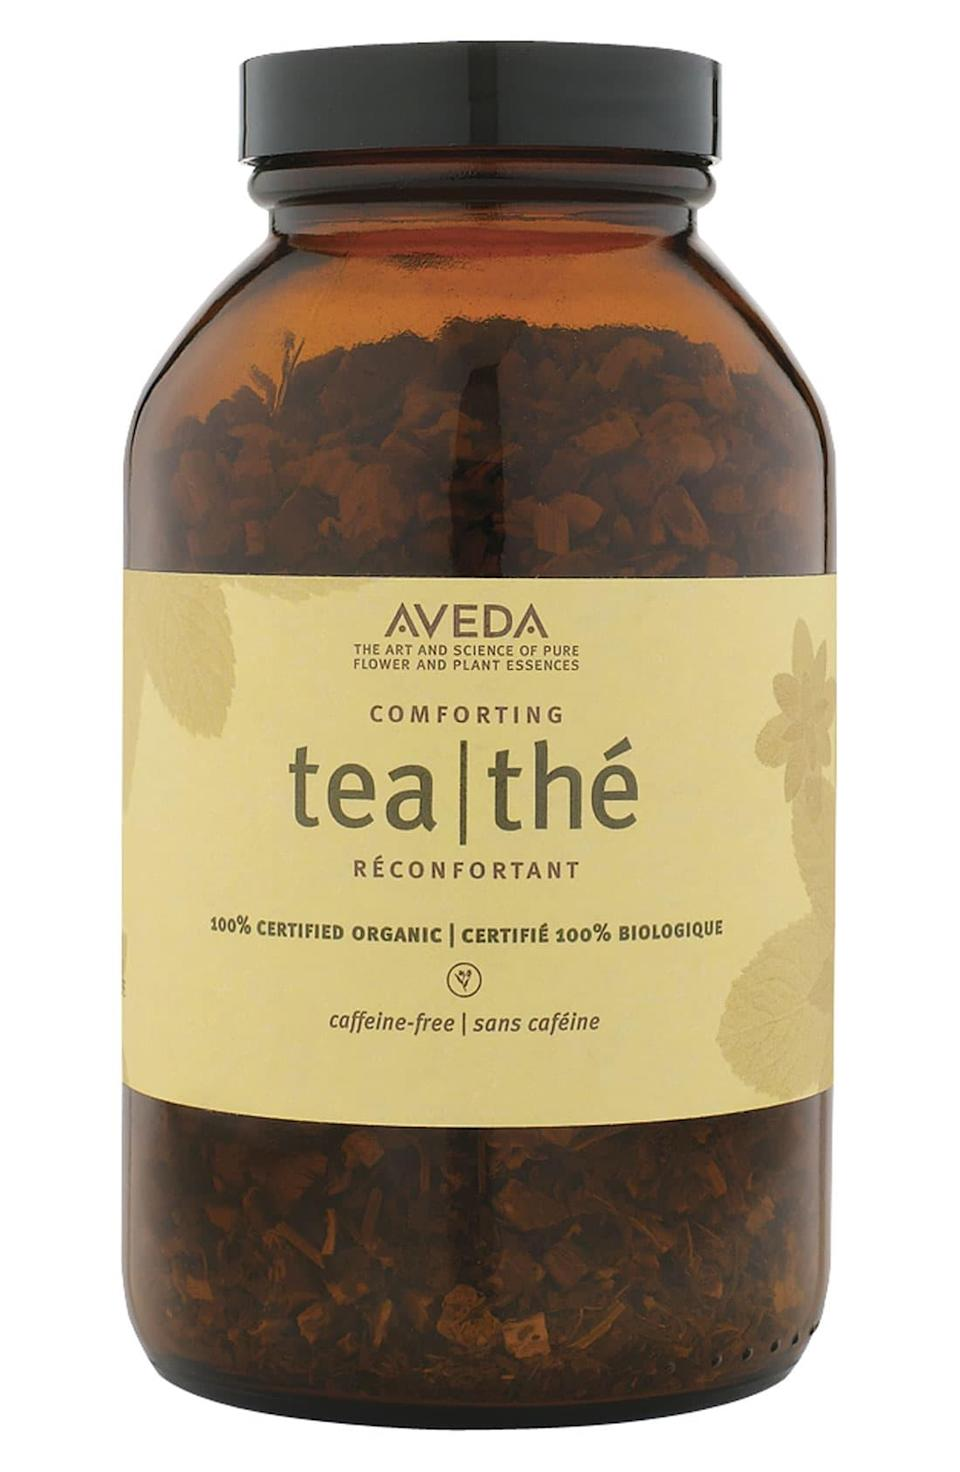 """<h3>Aveda Comforting Tea </h3><br><br>Of all the products on this list, I've been hooked on this one the longest. It's my tried and true go-to for a relaxing night in. Sipping on the herbal blend will help soothe you with its warmth and heavenly smell. It's caffeine and sugar free, and there are no added flavorings. That may sound boring and flavorless to you, but I assure you it's delightful despite these marks. Licorice root and peppermint make it naturally sweet. If I could<strong>, </strong>I'd abandon my life as a writer, and go live out the rest of my days as a small Thumbelina-like being in one of these teabags. It's <em>that</em> <a href=""""https://www.healthline.com/nutrition/peppermint-tea#section8"""" rel=""""nofollow noopener"""" target=""""_blank"""" data-ylk=""""slk:relaxing"""" class=""""link rapid-noclick-resp"""">relaxing</a>.<br><br><strong>Aveda</strong> Comforting Tea, $, available at <a href=""""https://go.skimresources.com/?id=30283X879131&url=https%3A%2F%2Fshop.nordstrom.com%2Fs%2Faveda-comforting-tea%2F3411456"""" rel=""""nofollow noopener"""" target=""""_blank"""" data-ylk=""""slk:Nordstrom"""" class=""""link rapid-noclick-resp"""">Nordstrom</a>"""